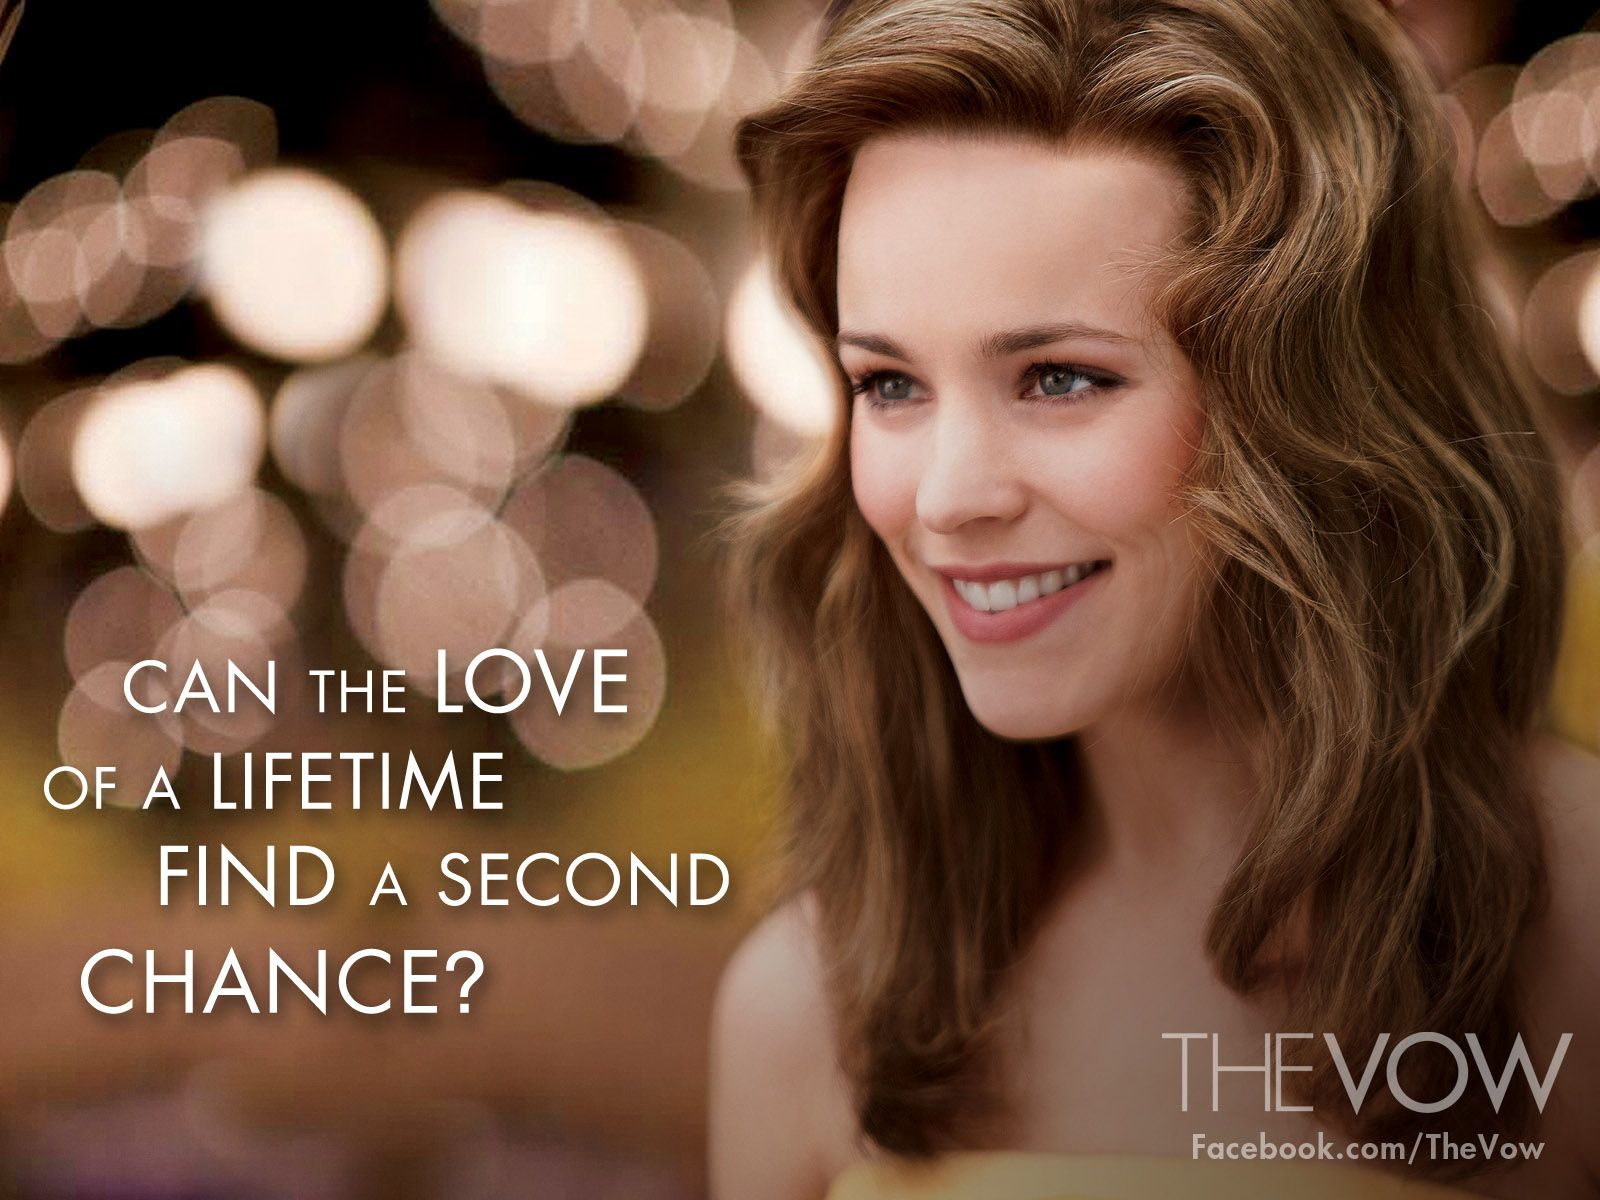 Rachel McAdams in The Vow